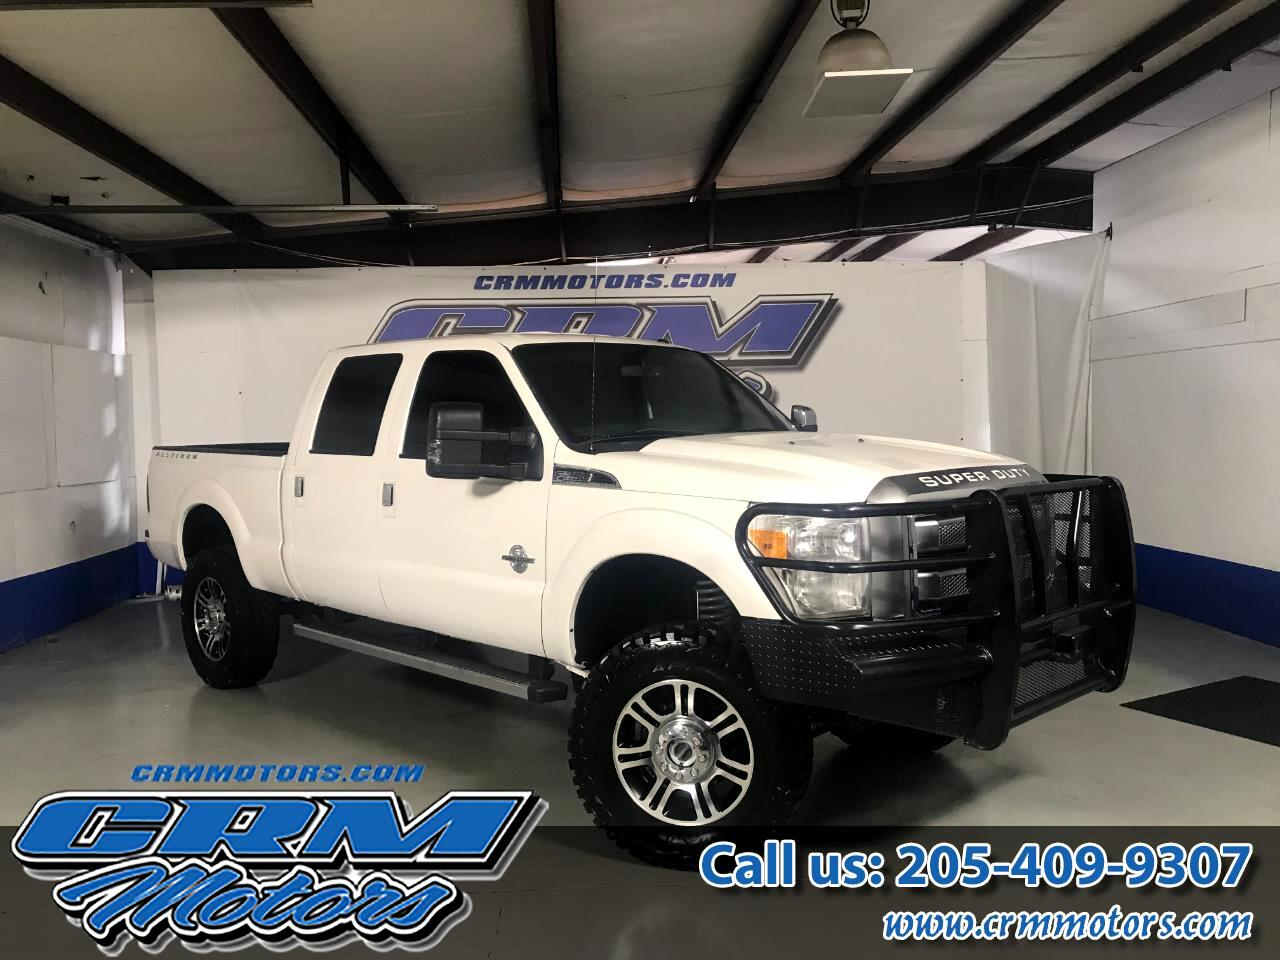 2014 Ford Super Duty F-250 SRW 4WD CREW CAB PLATINUM EDITION!